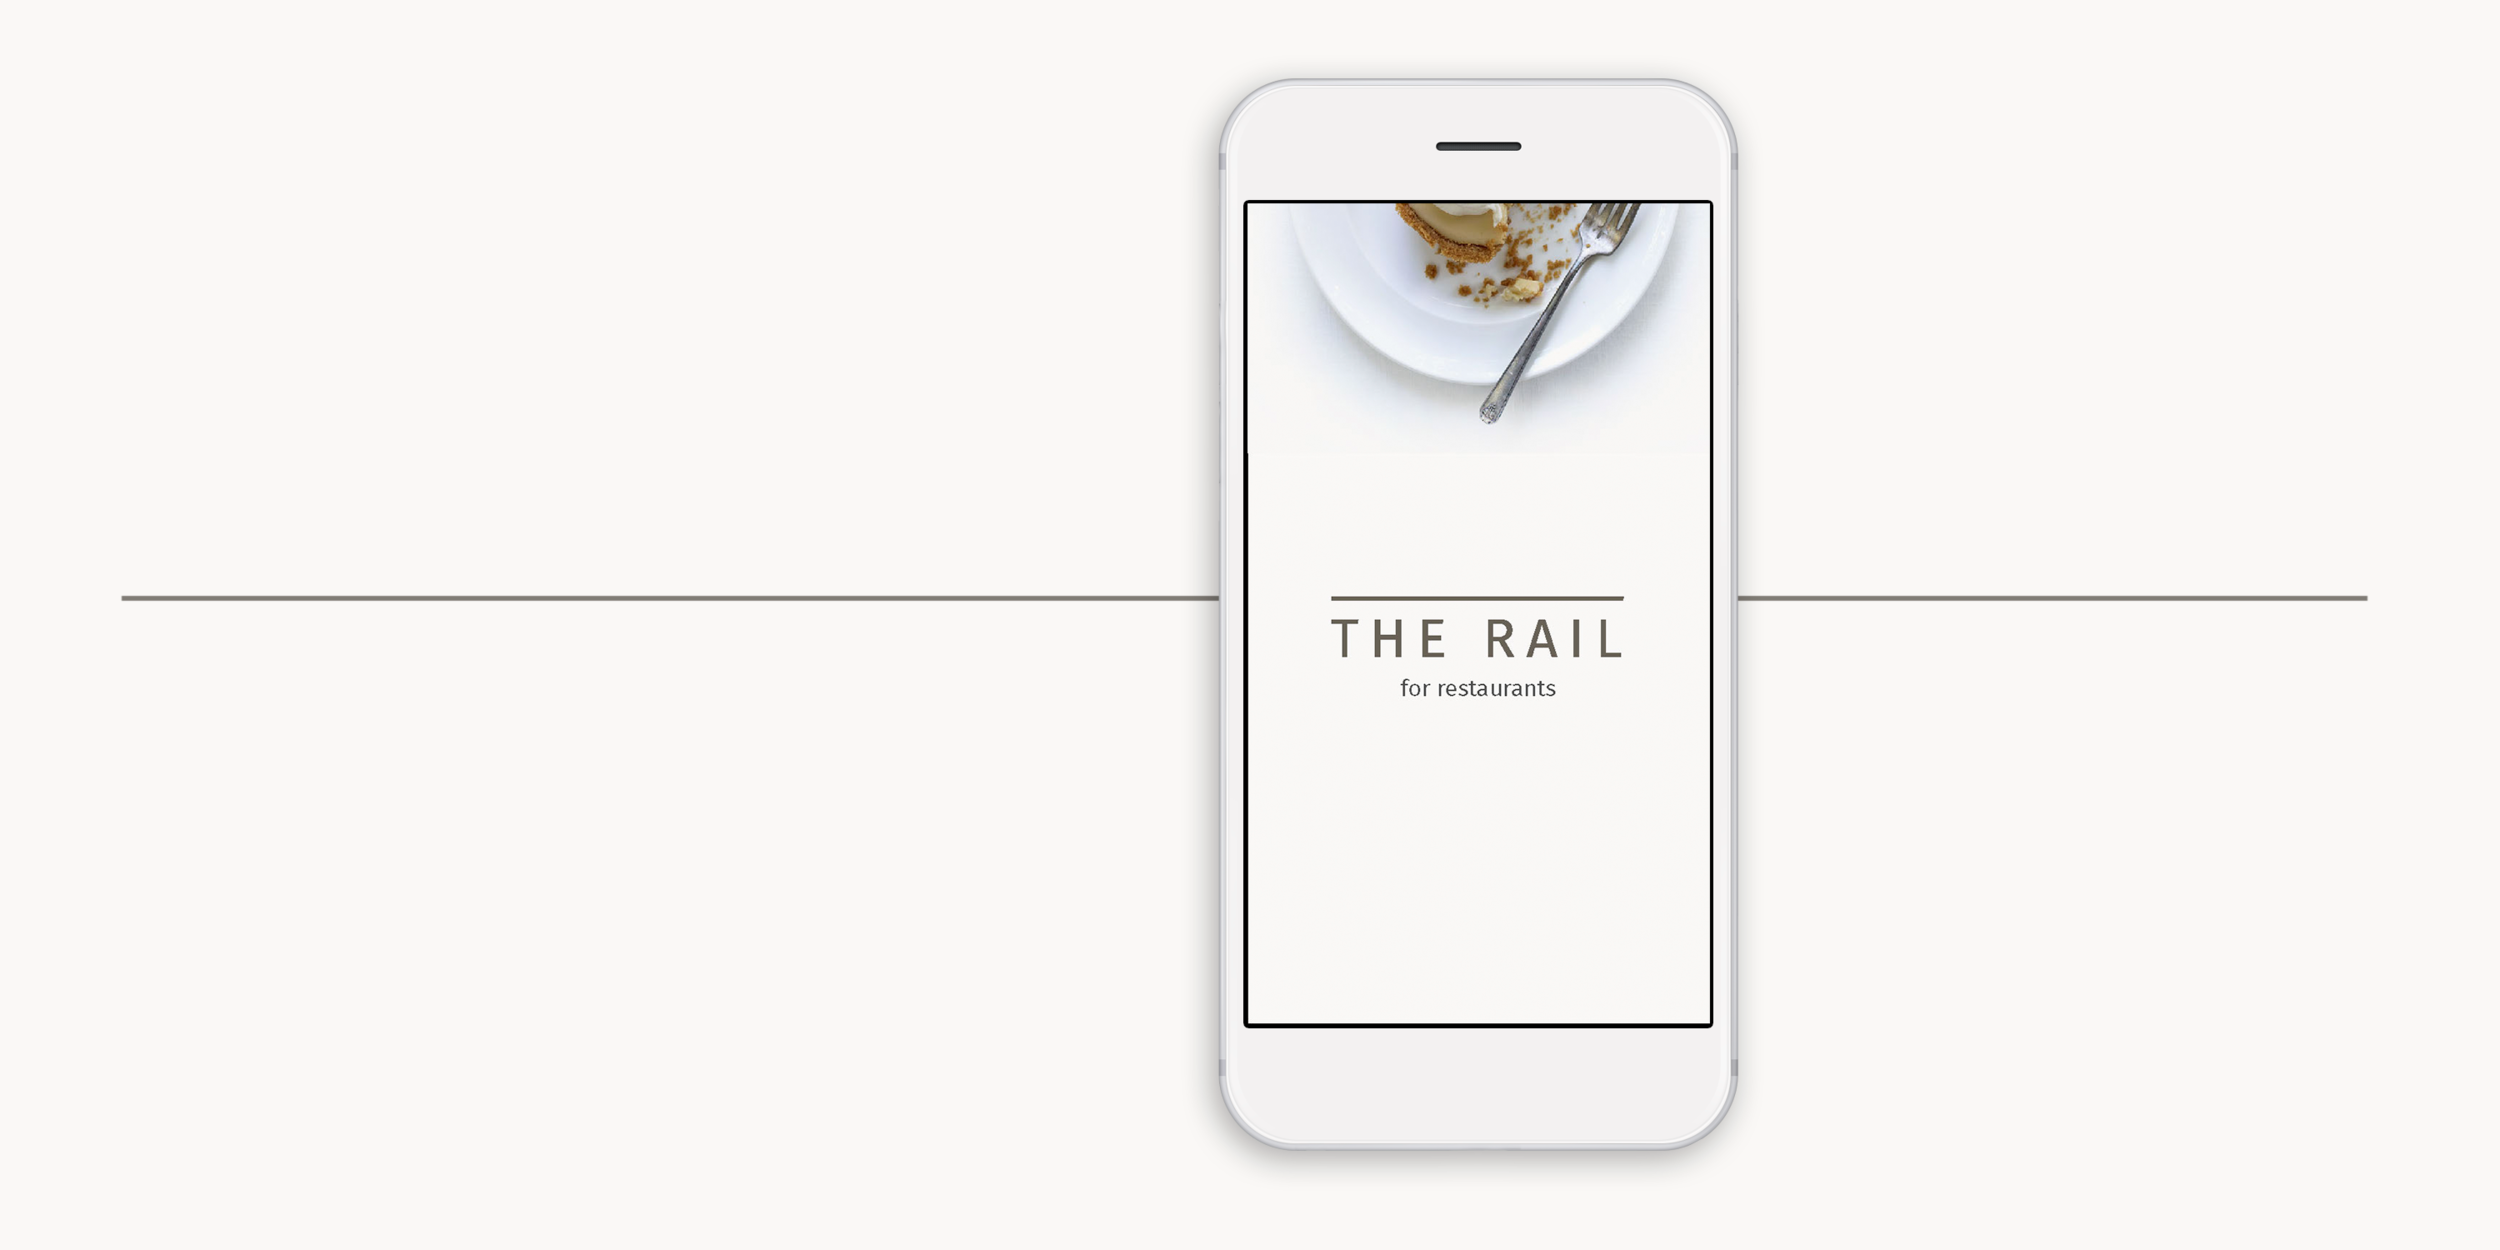 WBCG_TheRail_Phone-Home.png